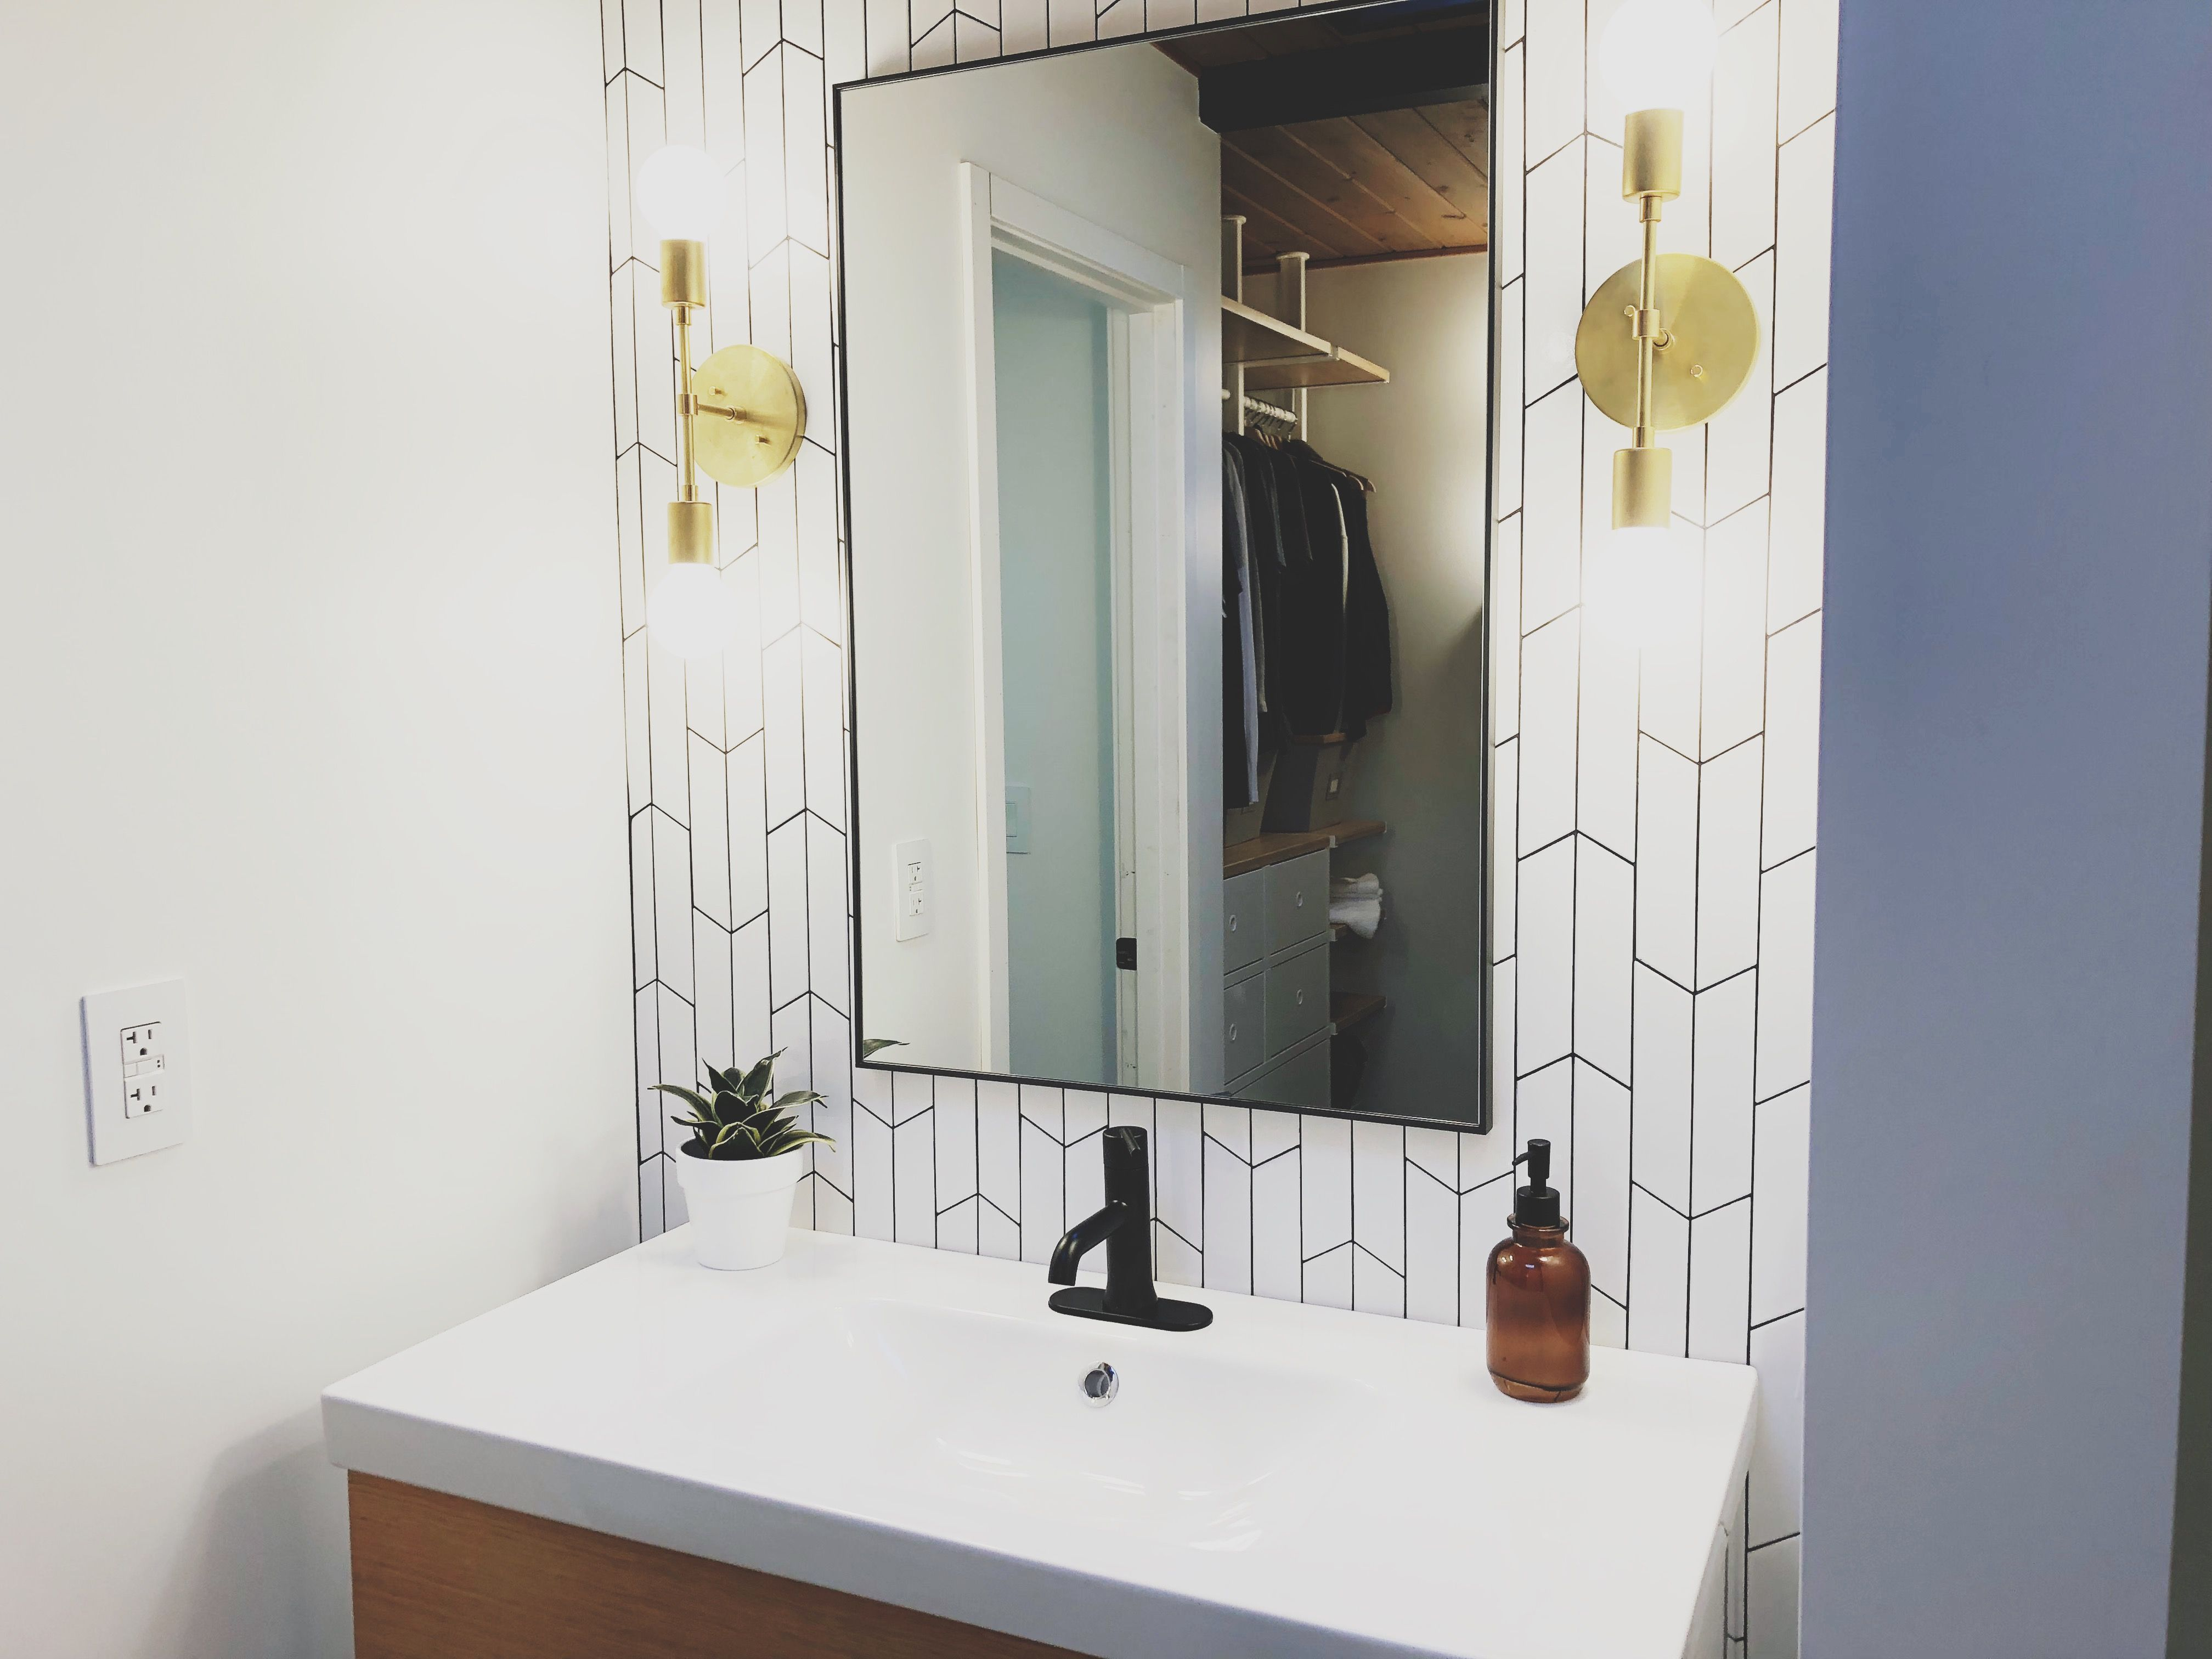 Our Bathroom Renovation We Loved How It Turned Out Cb2 Mirror Ikea Vanity Triple Seven Home Lights Wayfa Ikea Vanity Bathroom Renovation Bathrooms Remodel